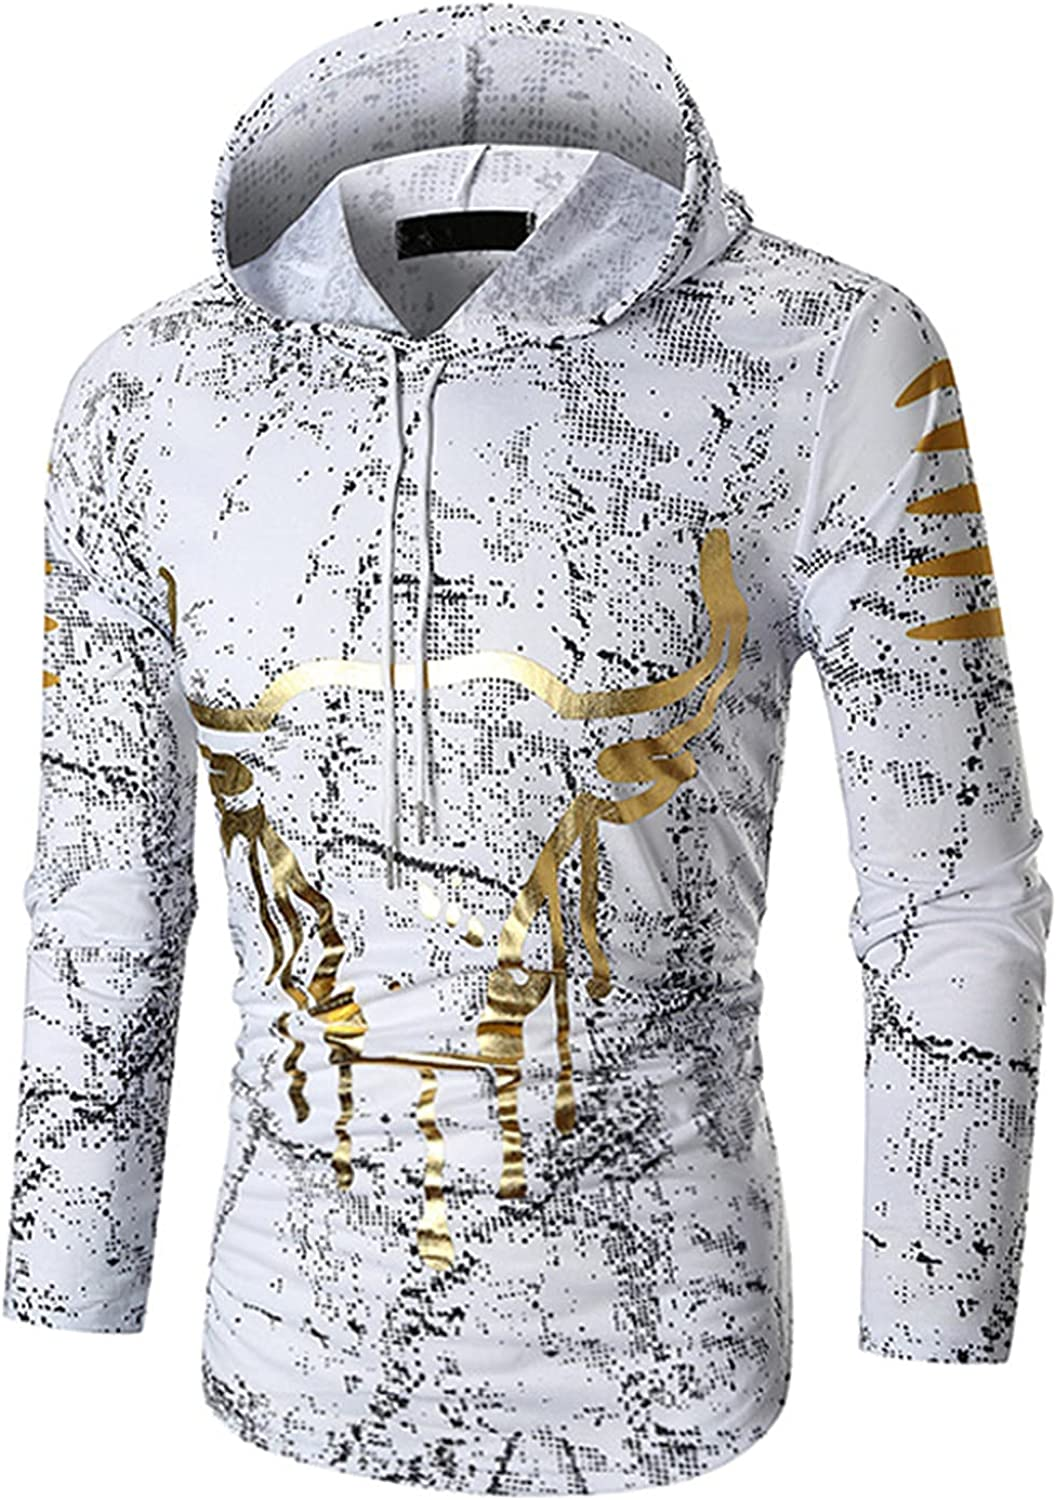 Men's Autumn And Winter Fashion Print Pullover Casual Long-sleeved Hooded Sweater Fittness Hoodie Shirts